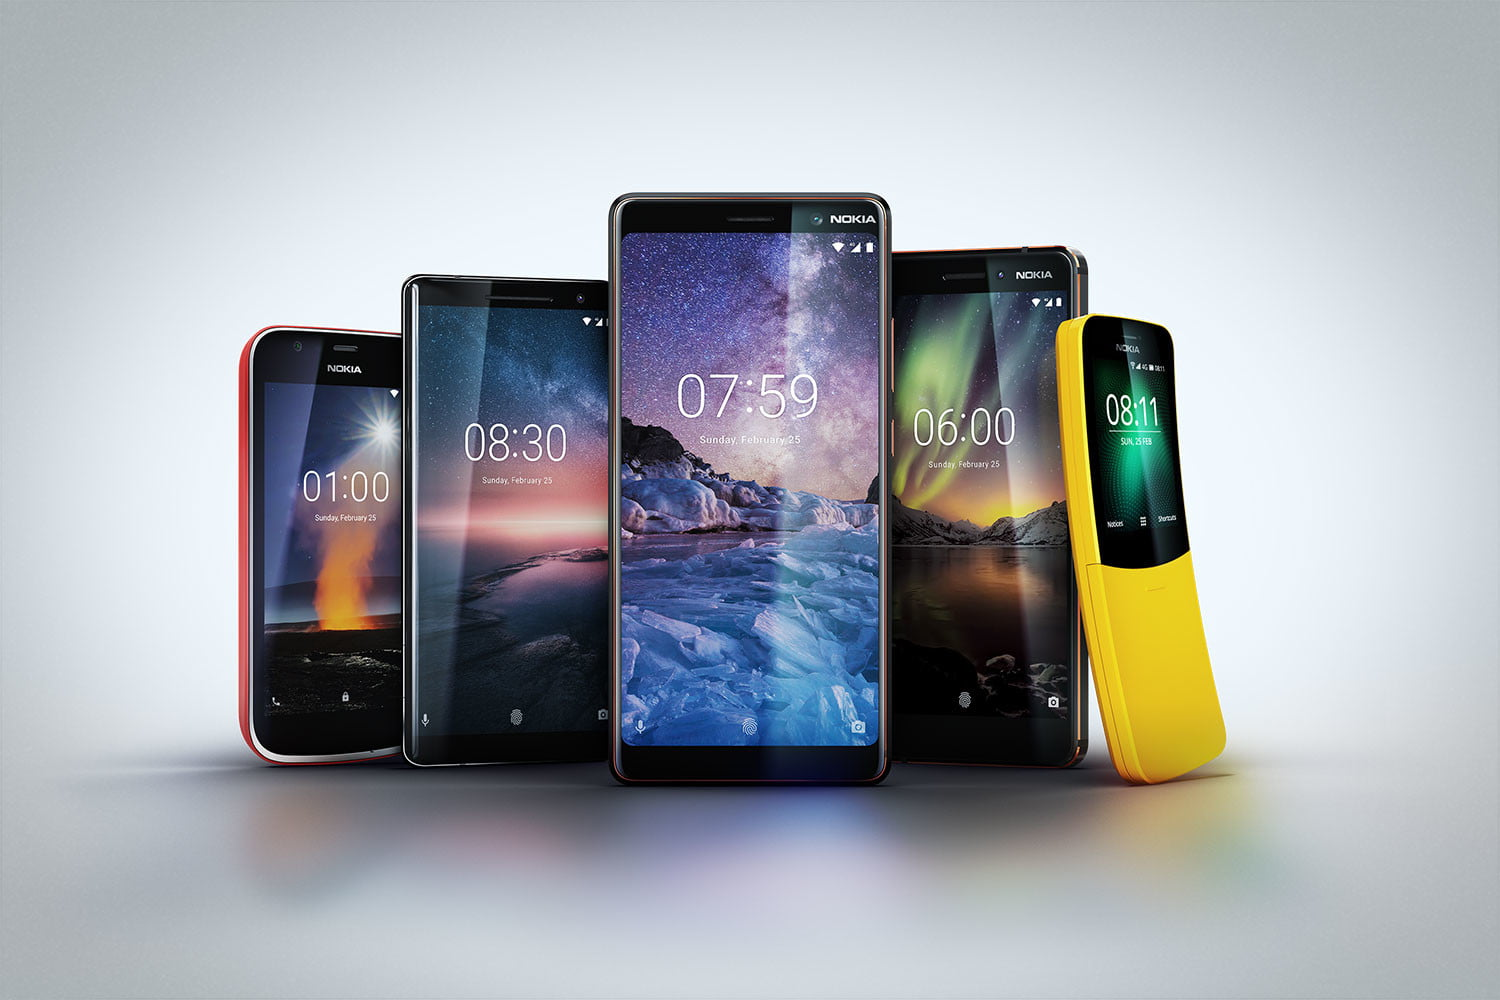 Hmd just announced 5 new nokia phones at mobile world congress hmd just announced 5 new nokia phones at mobile world congress digital trends gumiabroncs Gallery